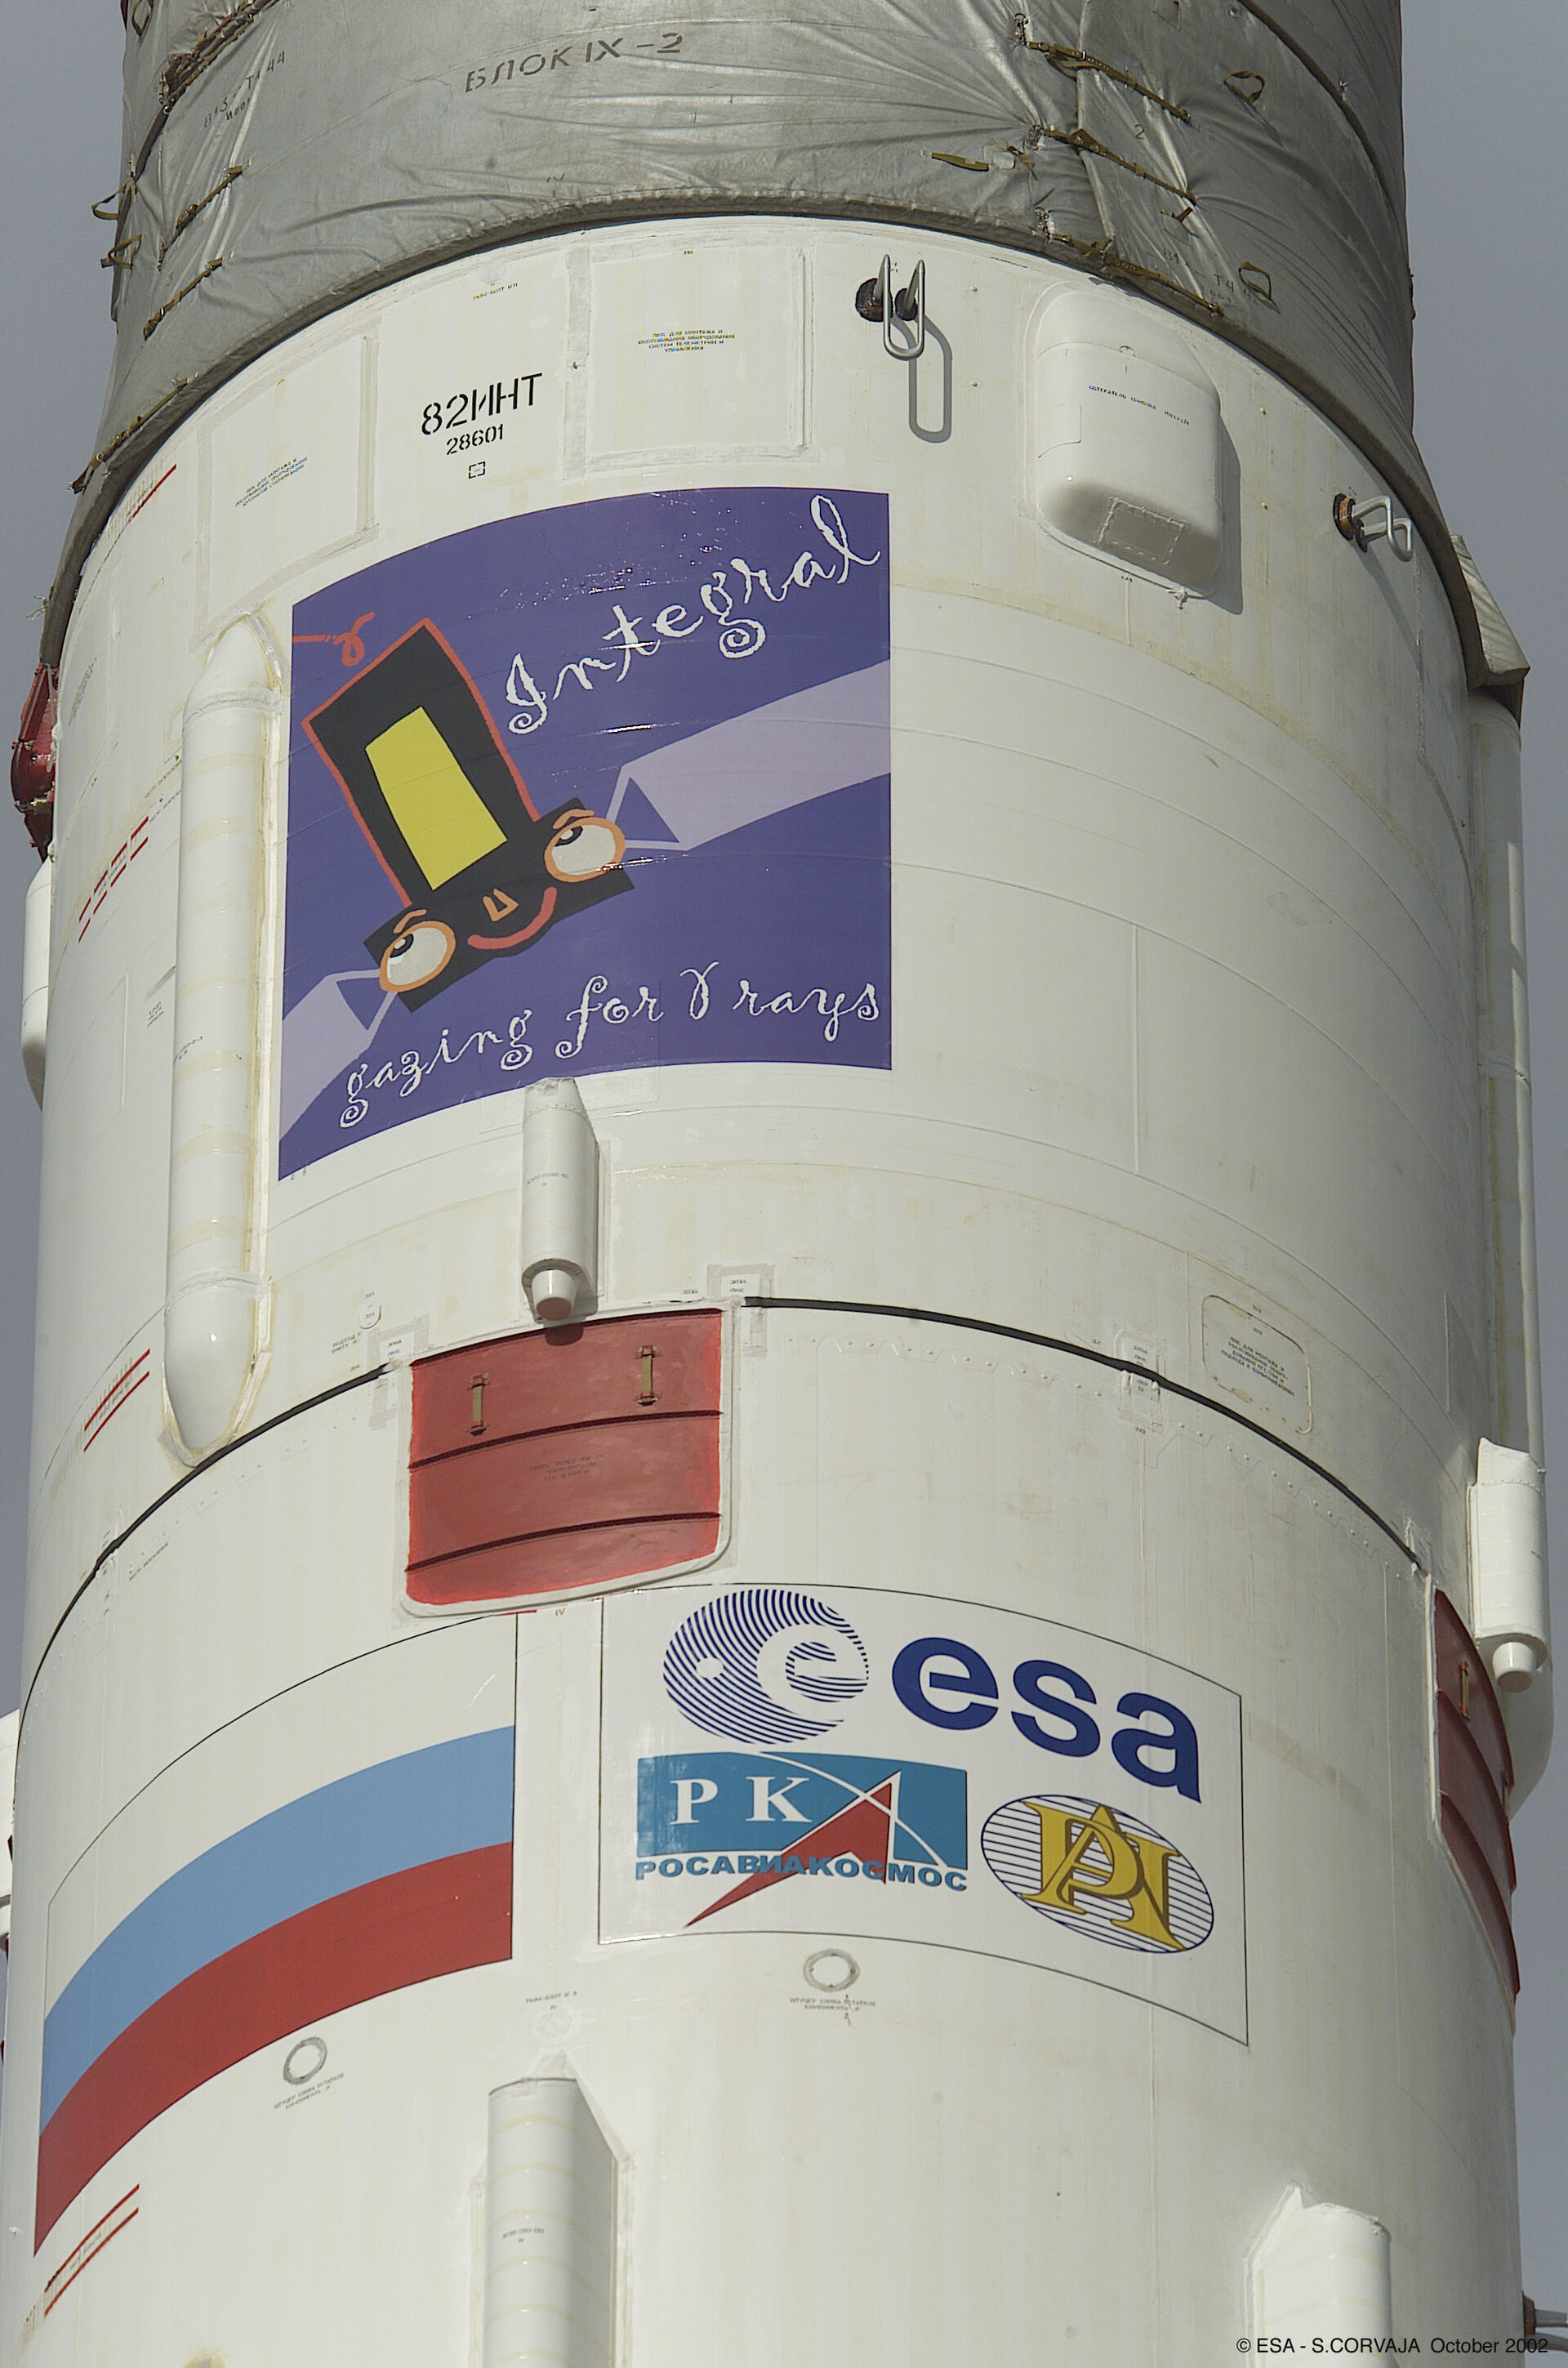 The Integral mission logo on the Proton launcher